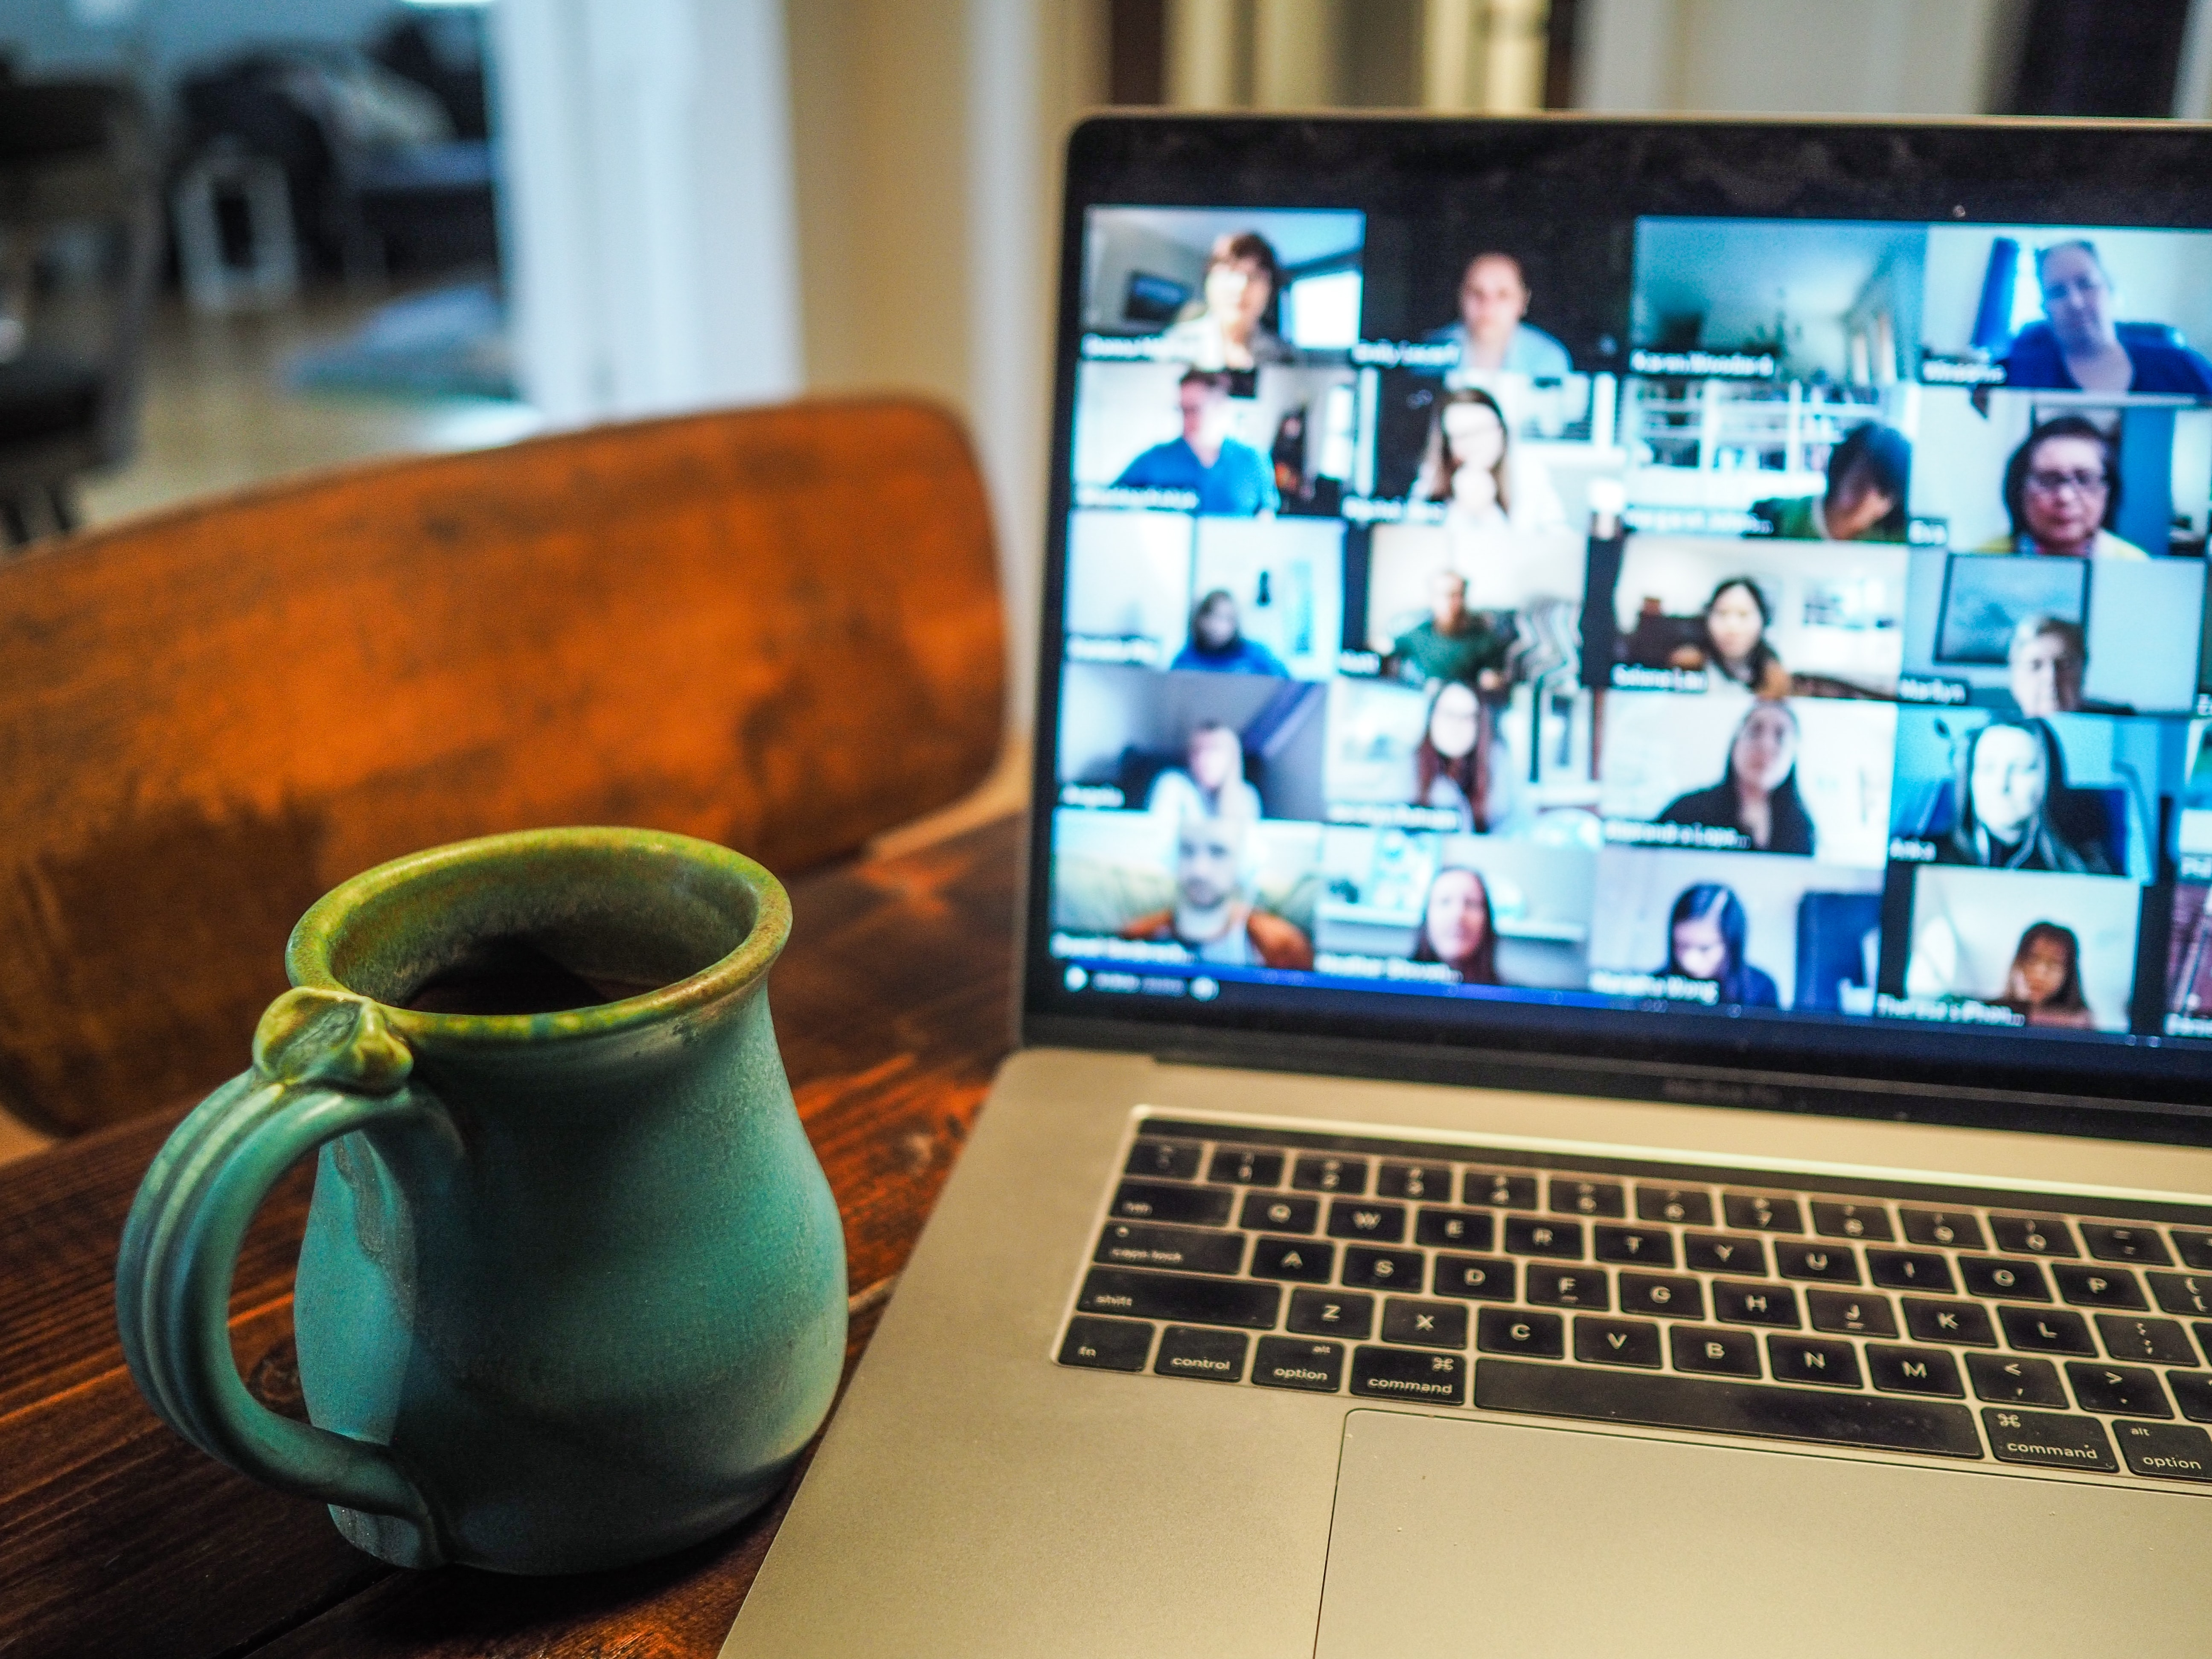 A laptop showing employees in a virtual meeting